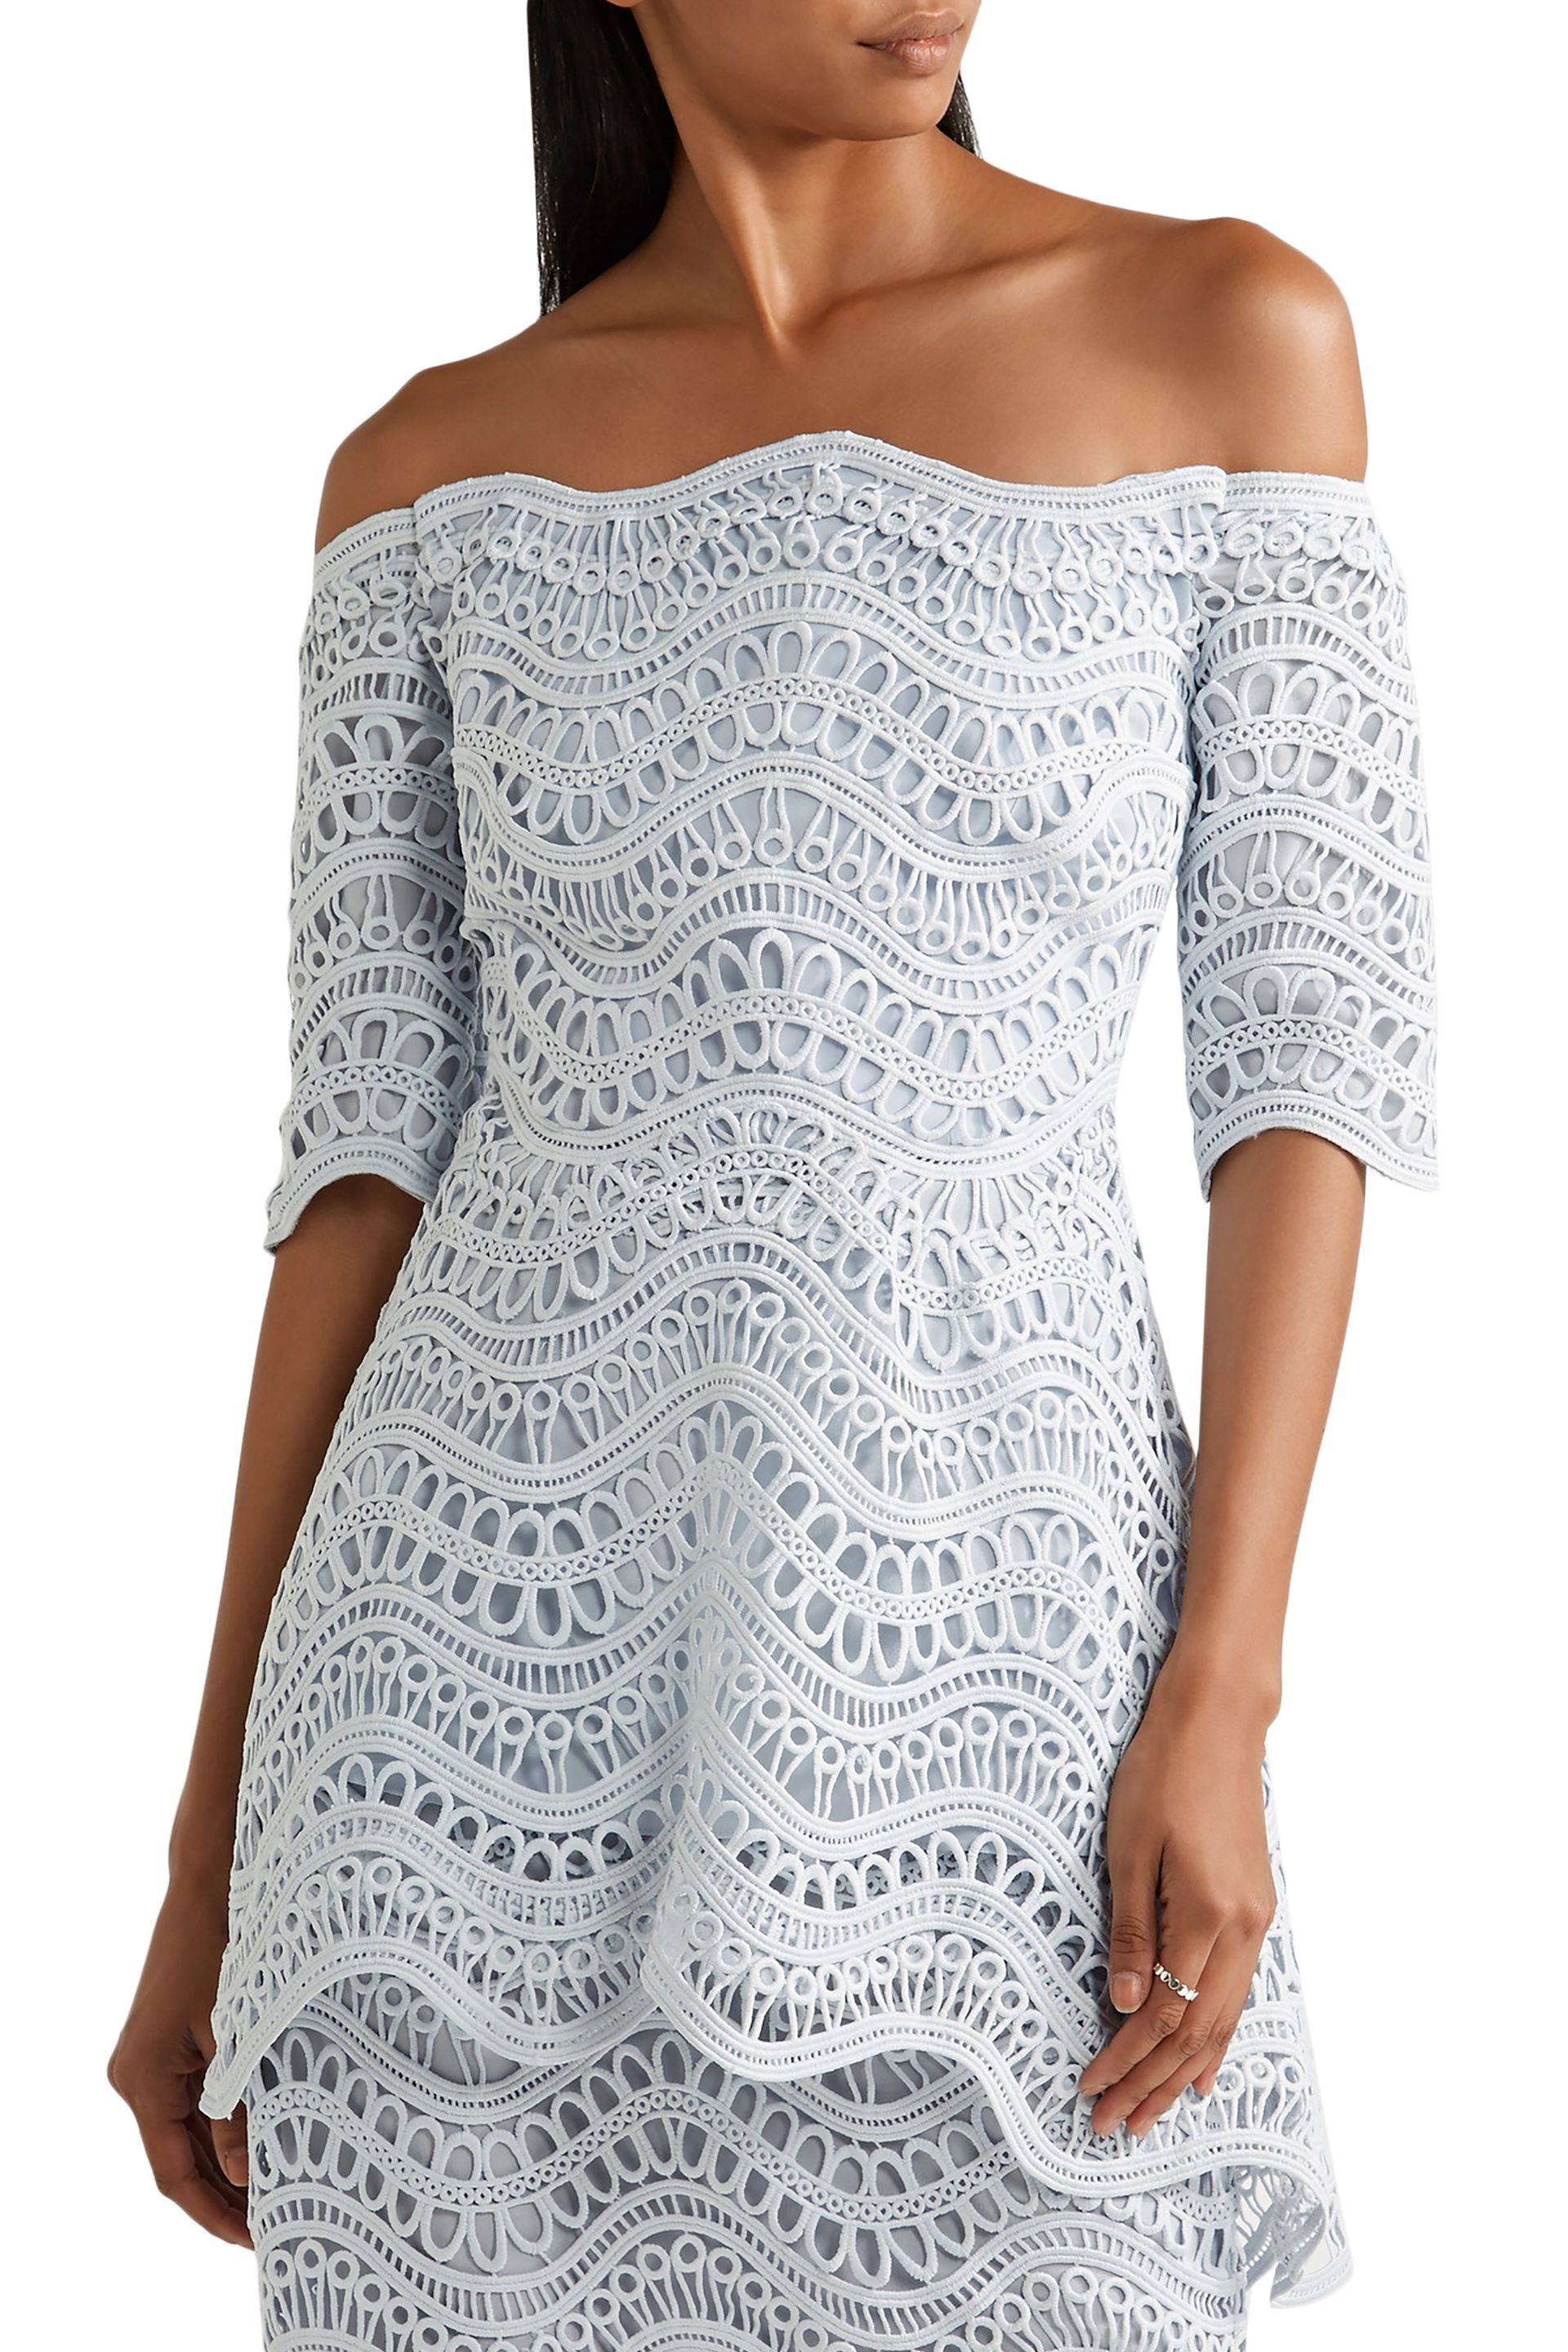 Lela Rose Off-the-shoulder guipure lace peplum top